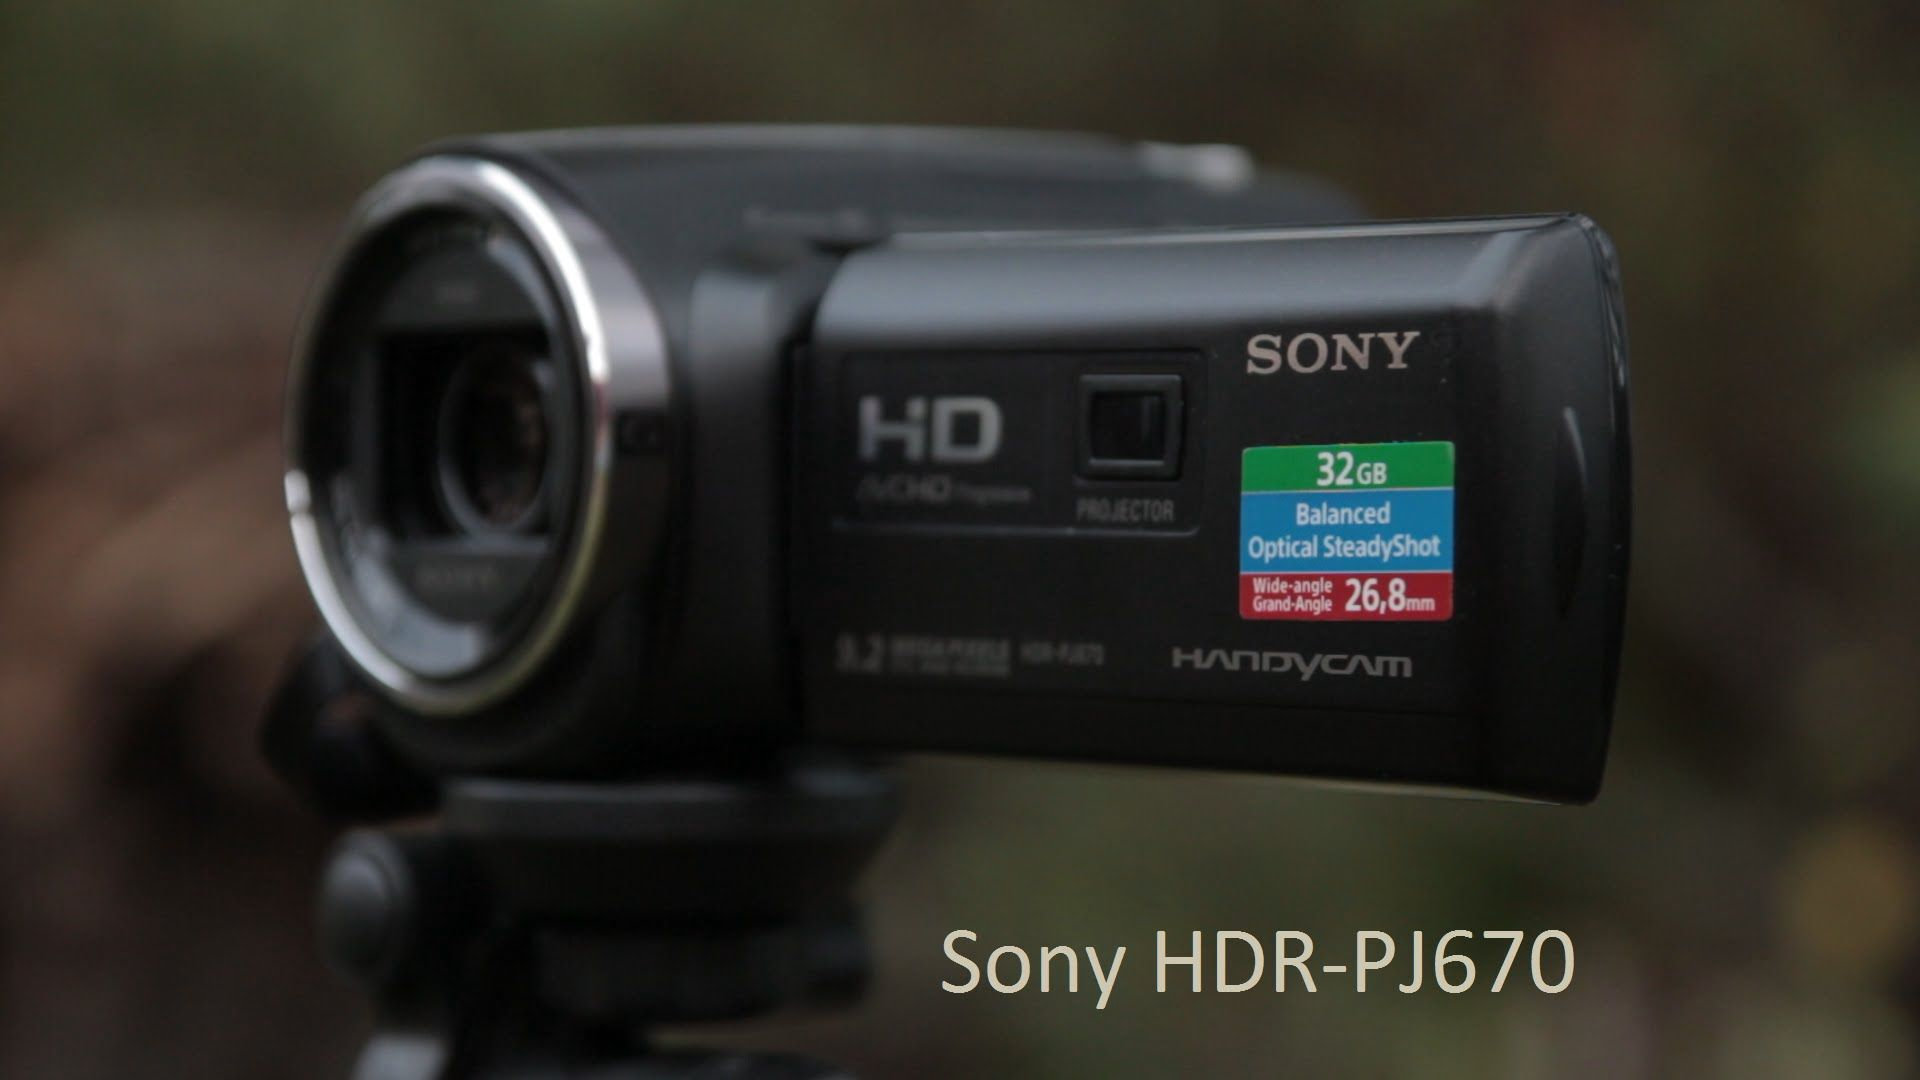 The Sony PJ670 is a camera from 2015 Sony consumer camcorder lineup It sports Balanced